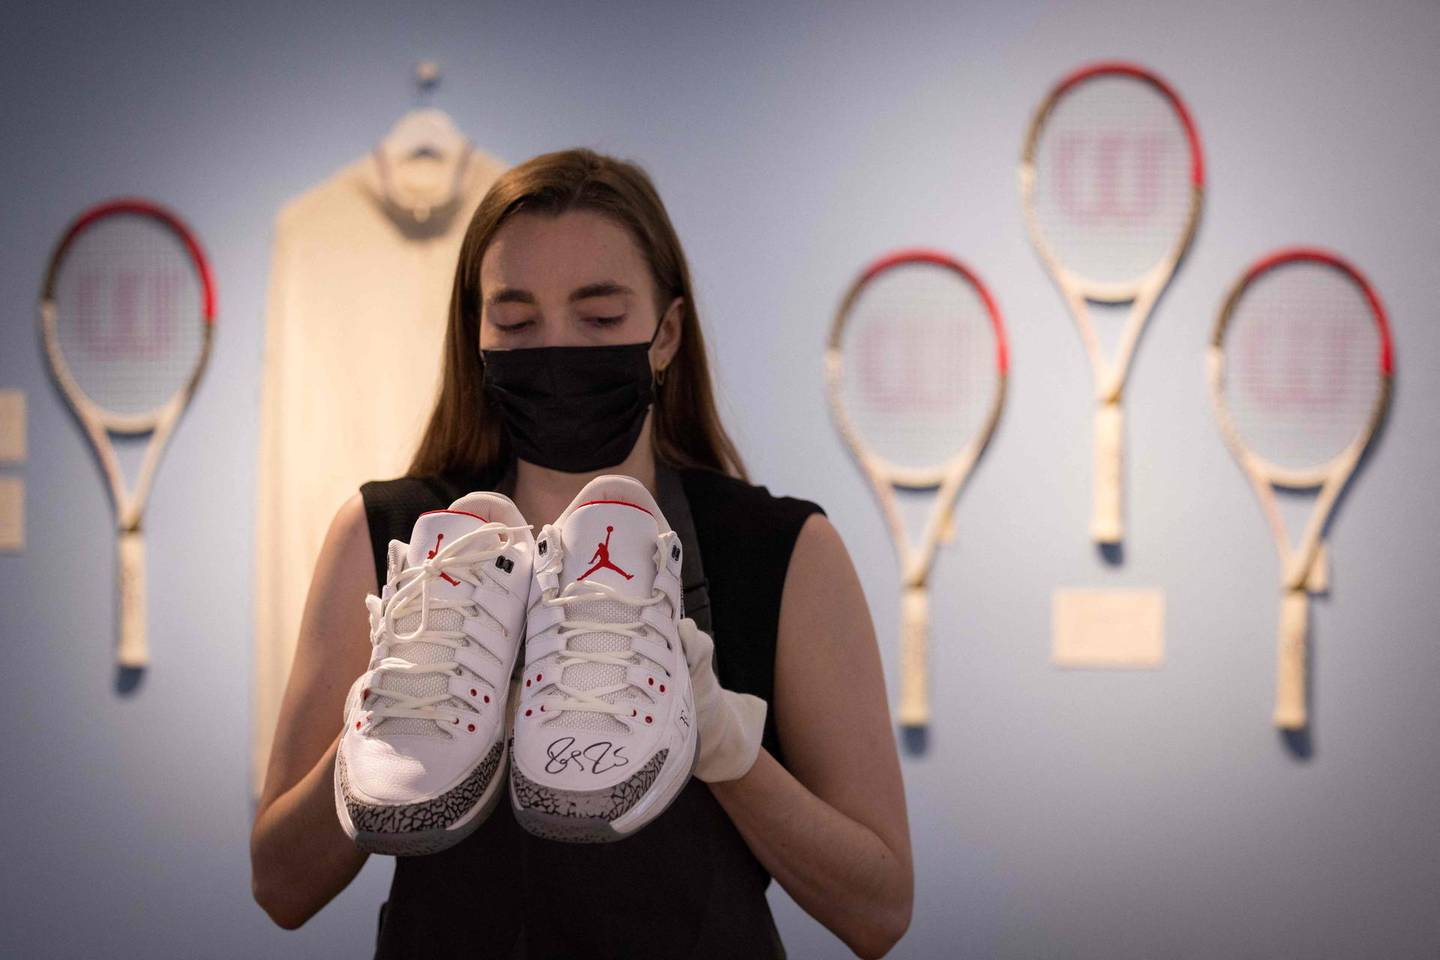 An assistant poses with Swiss tennis champion Roger Federer's Nike Air Jordans from the 2014 US Open during a photocall at Christie's auction house in central London on June 21, 2021. / AFP / Tolga Akmen